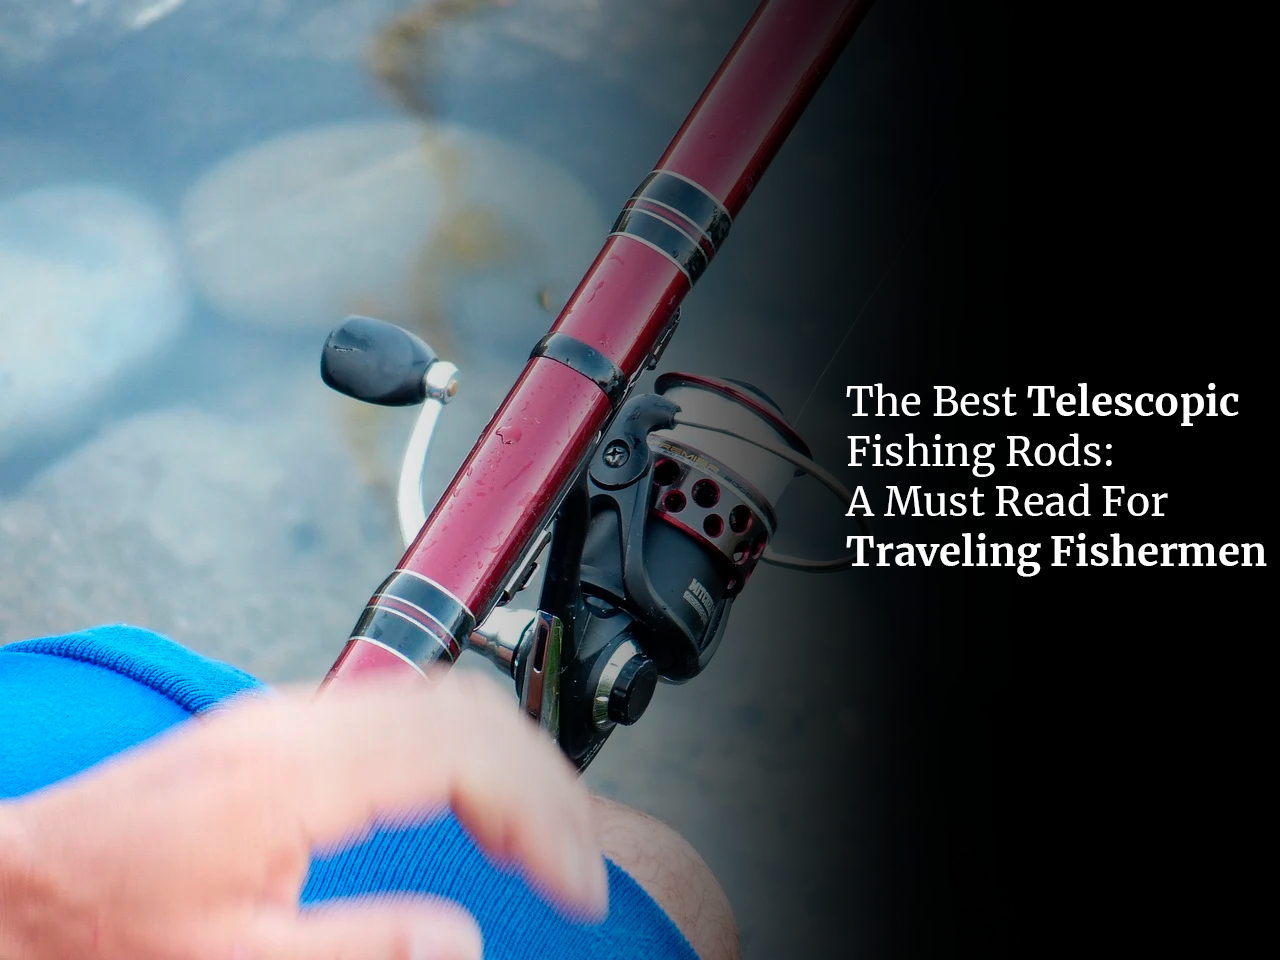 The Best Telescopic Fishing Rods: A Must Read For Traveling Fishermen